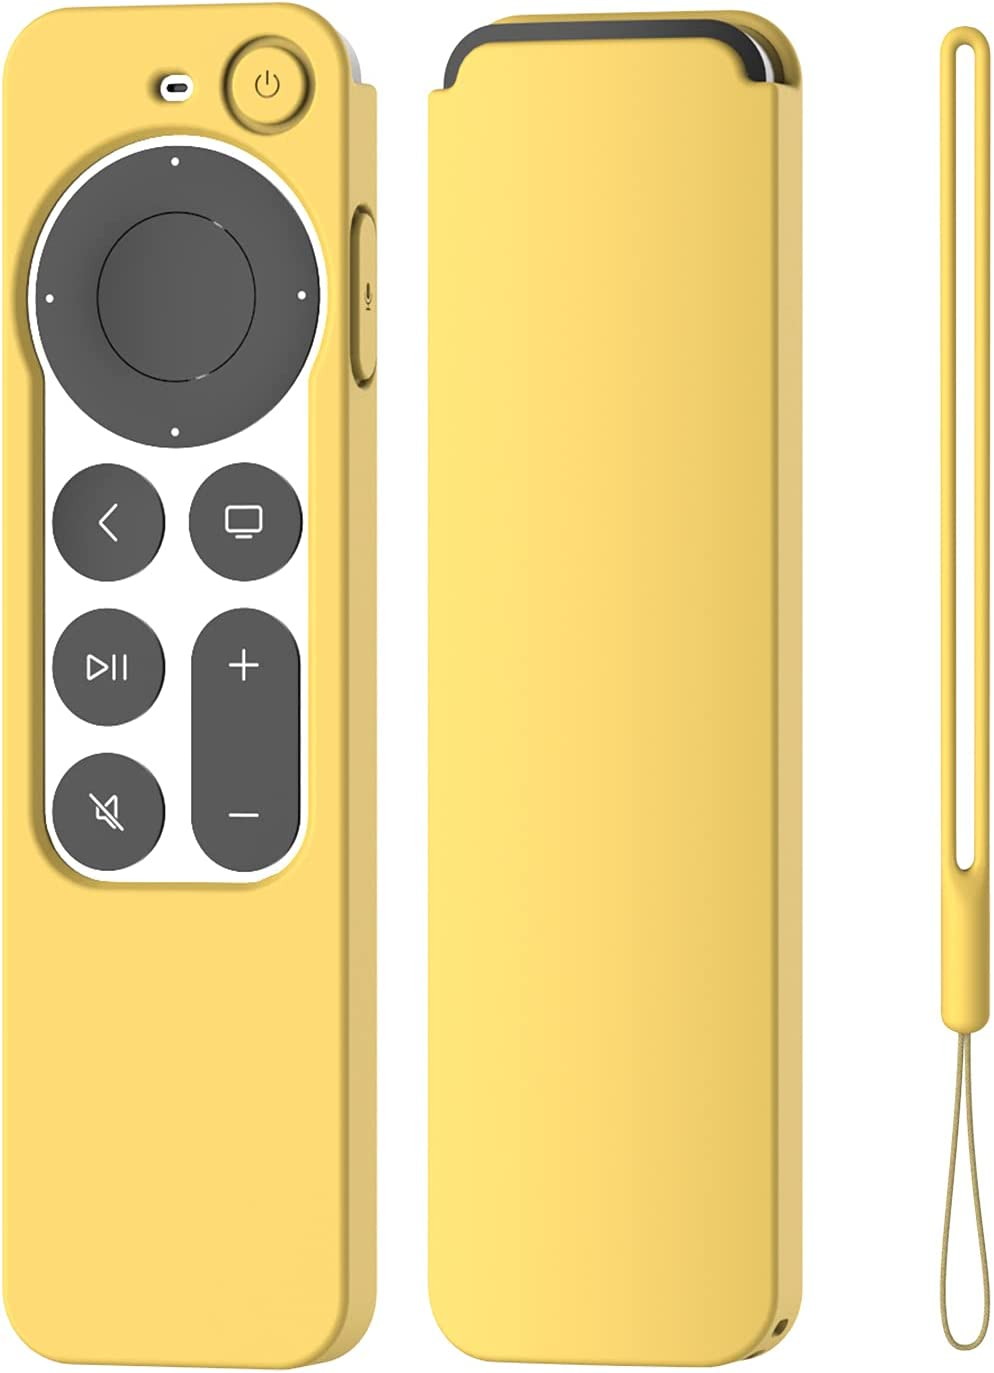 K TOMOTO Compatible with Apple TV 4K Siri Remote Case 2021, Silky-Soft Anti-Slip Protective Silicone Cover for Siri Remote Control 2nd Generation [Lanyard Included], Yellow